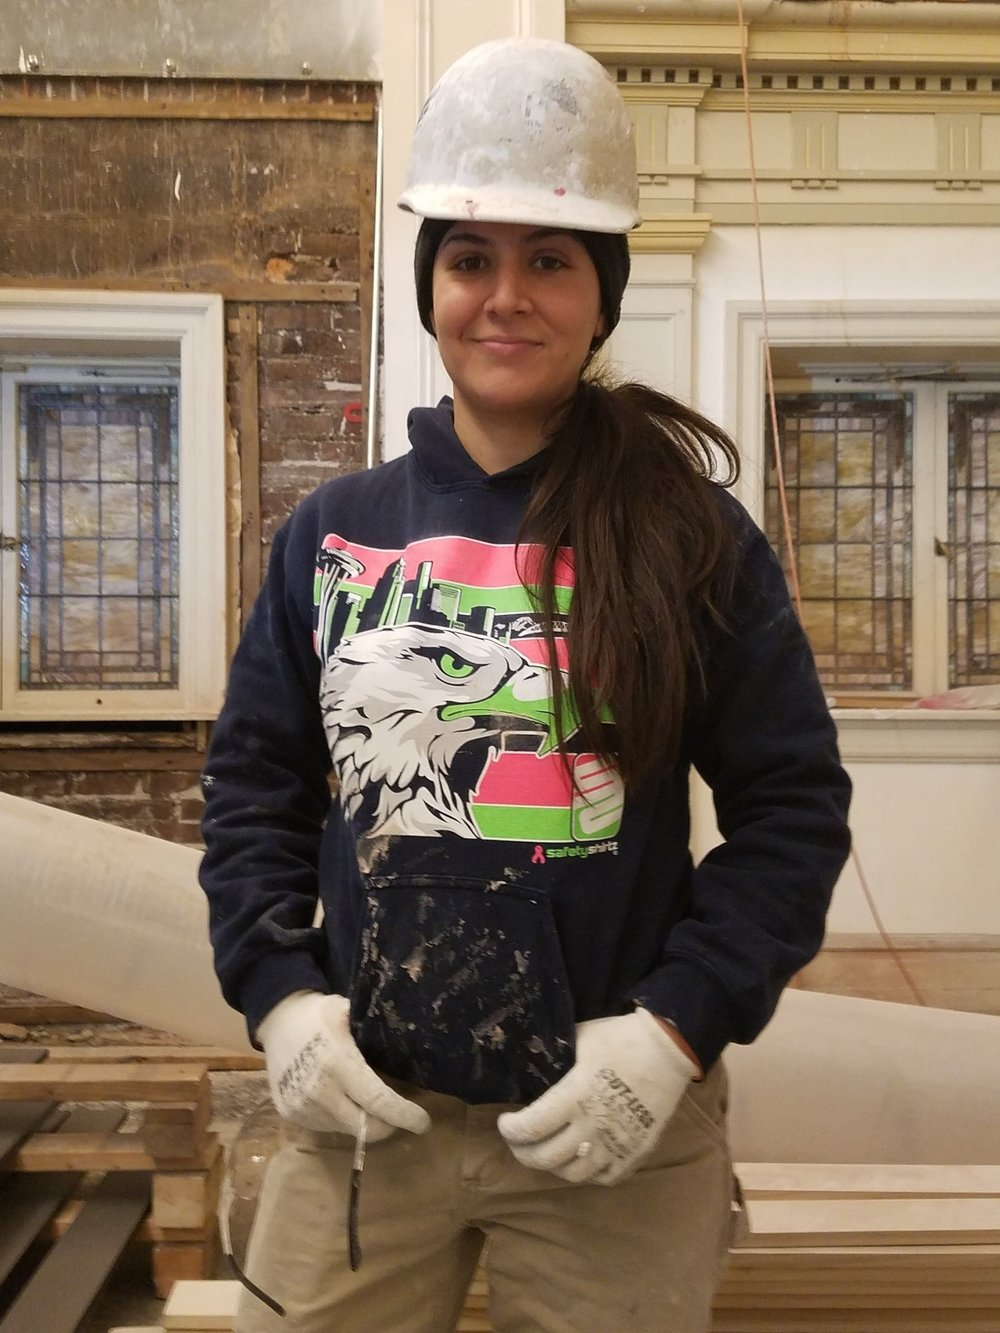 ROXANA OROZCO -PLASTERER - Roxana Orozco has been a Local 528 Plasterer since September, 2012. She was working as a server at Olive Garden and decided she wanted a job that offered variety, working outdoors and working with her hands. The waiting list for the Carpenters was too long, so she looked to the Cement Masons. Frank Benish directed her to the Plasterers for better job opportunities at the time. She loves the ornate aspects of being a Plasterer and has become very well rounded working at PCI. She worked on the King Street Station, the Space Needle and is currently working on the retrofit of the Seattle Townhall building. Roxana is the only Journeywomen Plasterer working in the field.Roxana loves working out, backpacking, cooking and she is an avid reader.She has recently become engaged and will be getting married this August.Roxana and her fiancé are looking forward to starting a family.